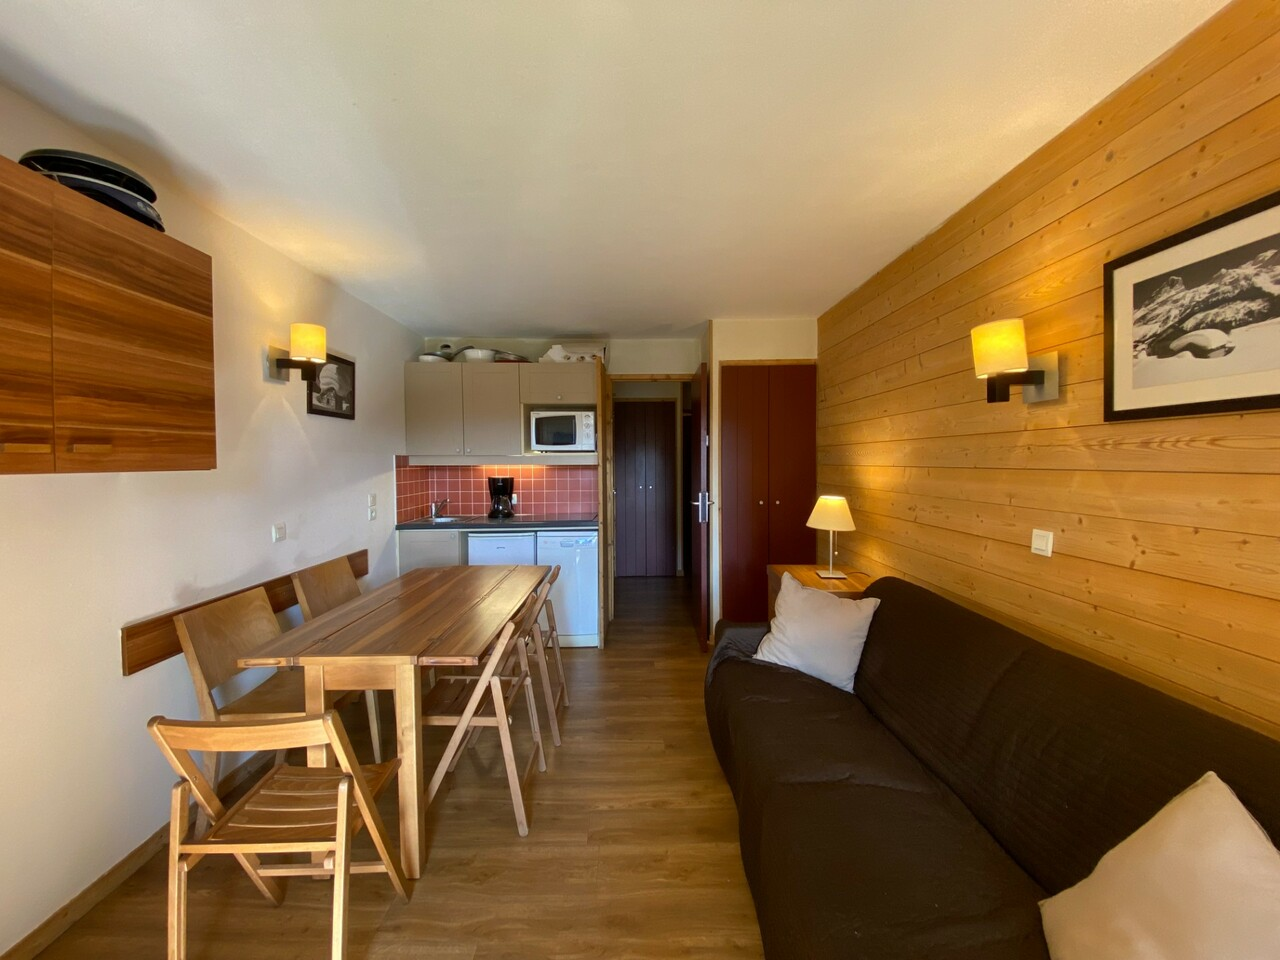 GOOD CONDITION APARTMENT WITH PARKING SPACE Accommodation in Val Thorens